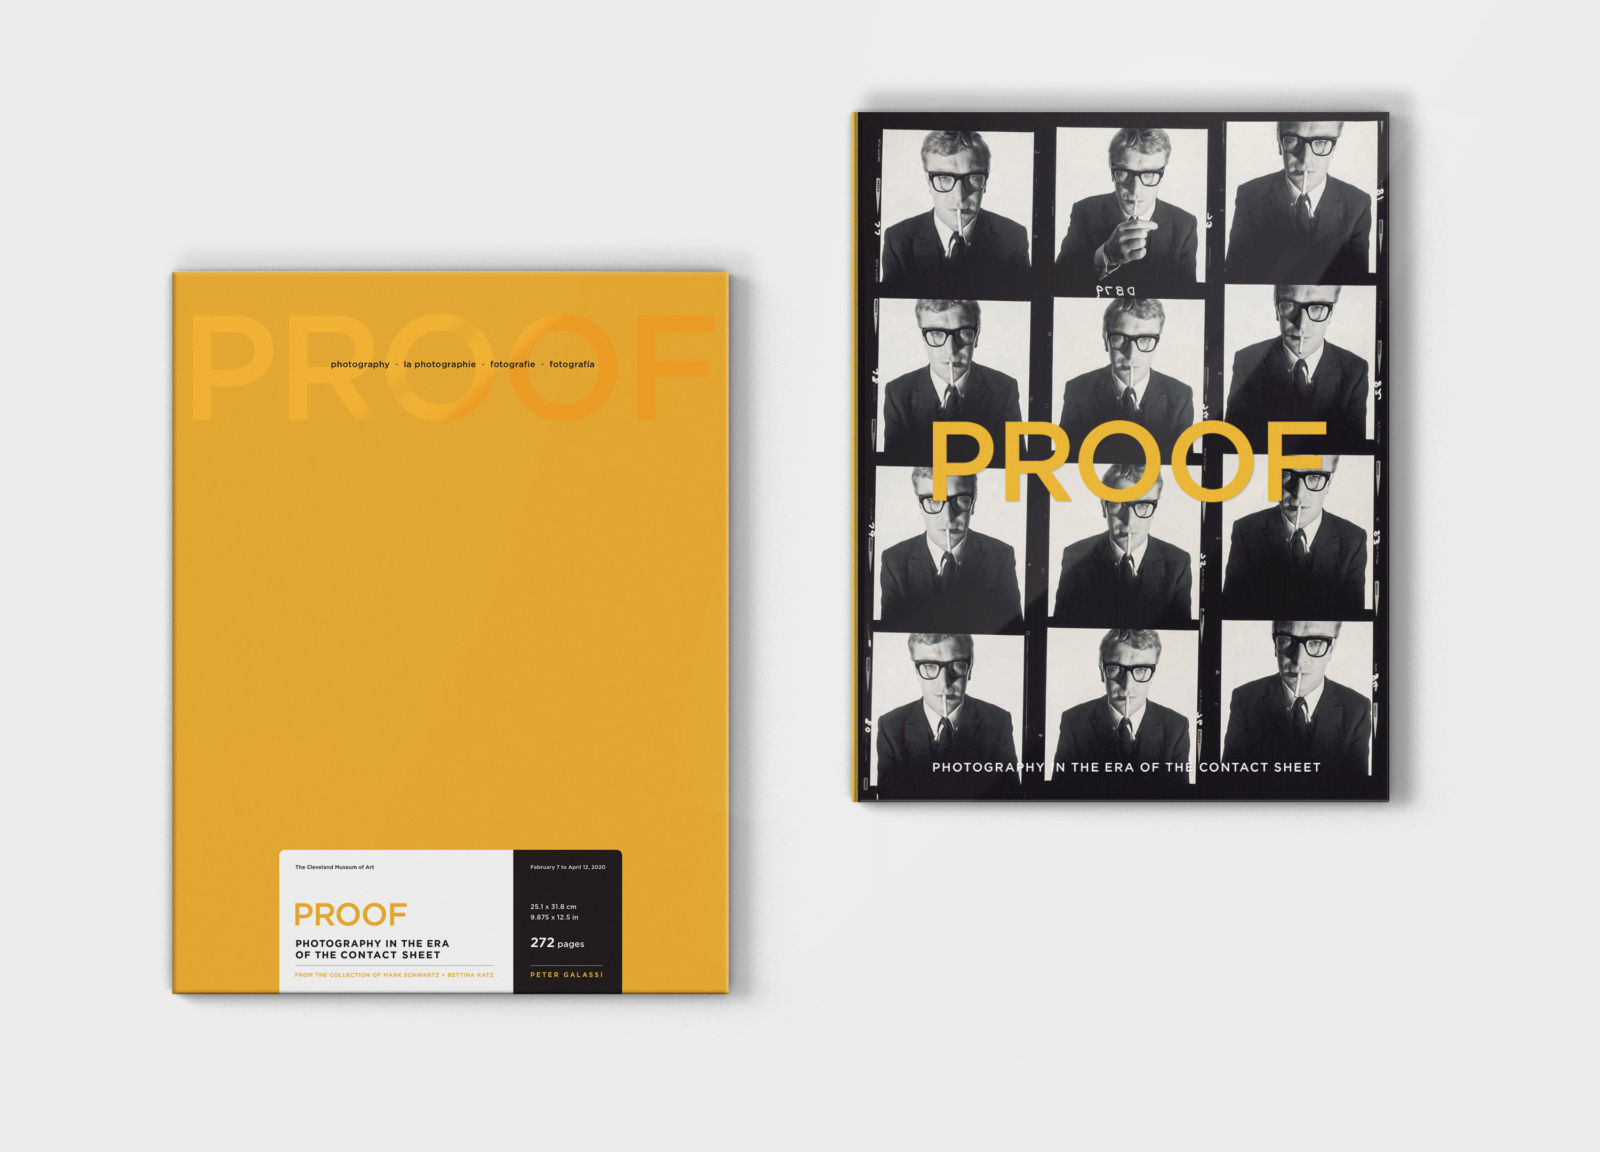 Brand design limited edition box set for PROOF, next to the book design with acetate cover